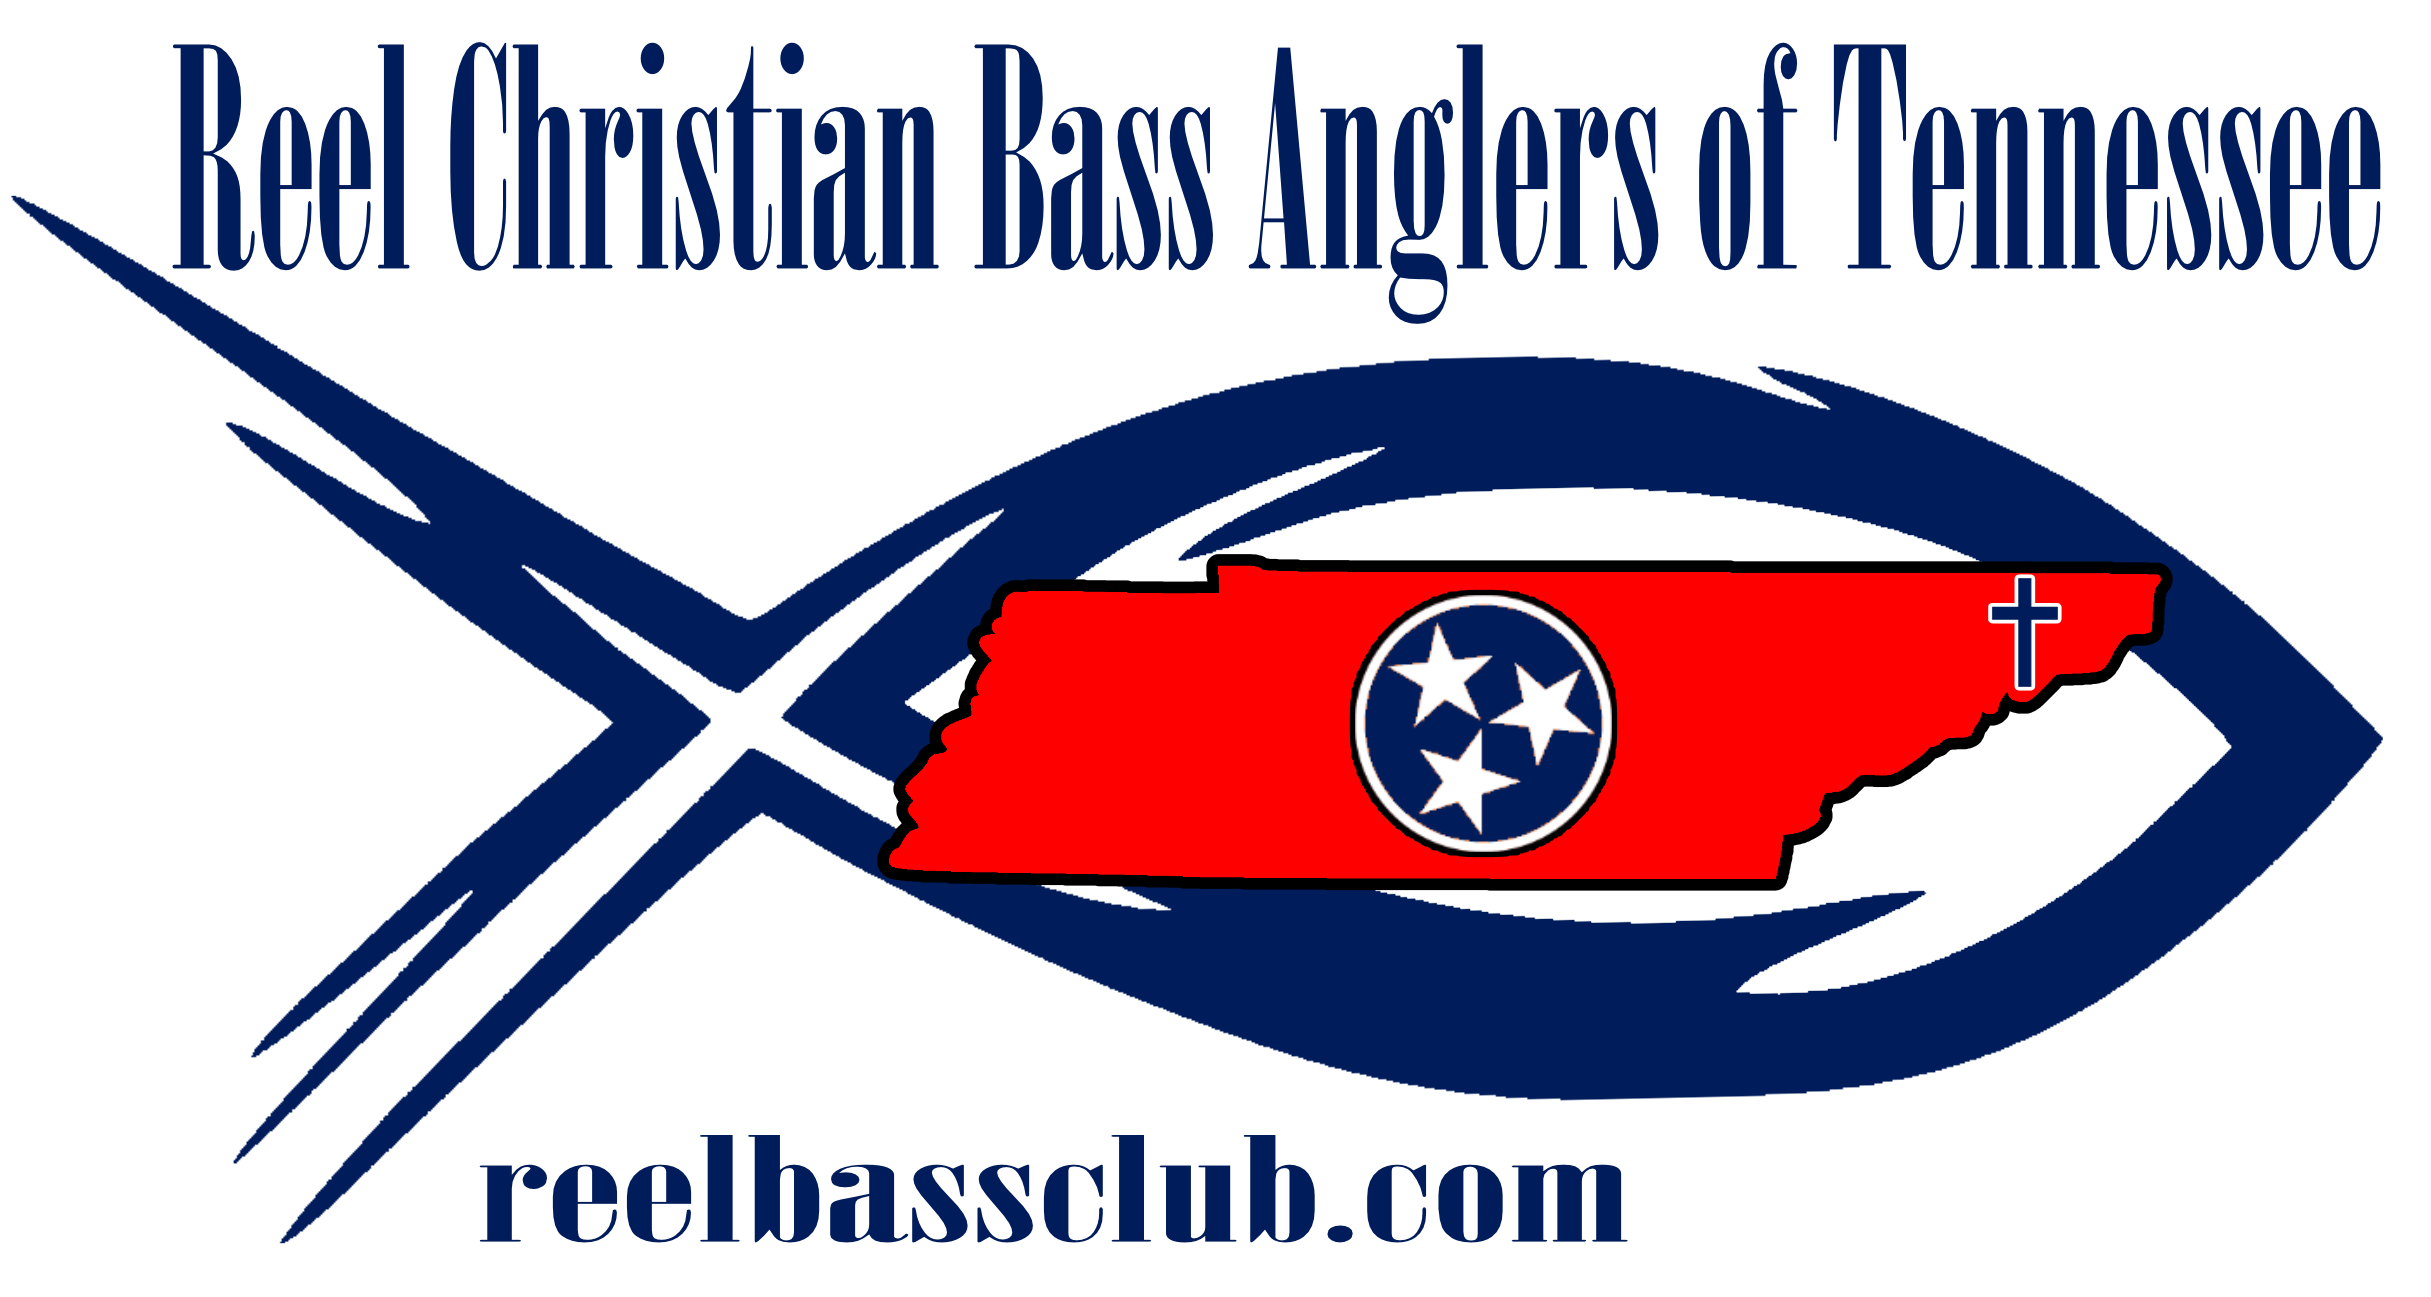 Reel Christian Bass Anglers of Tennessee